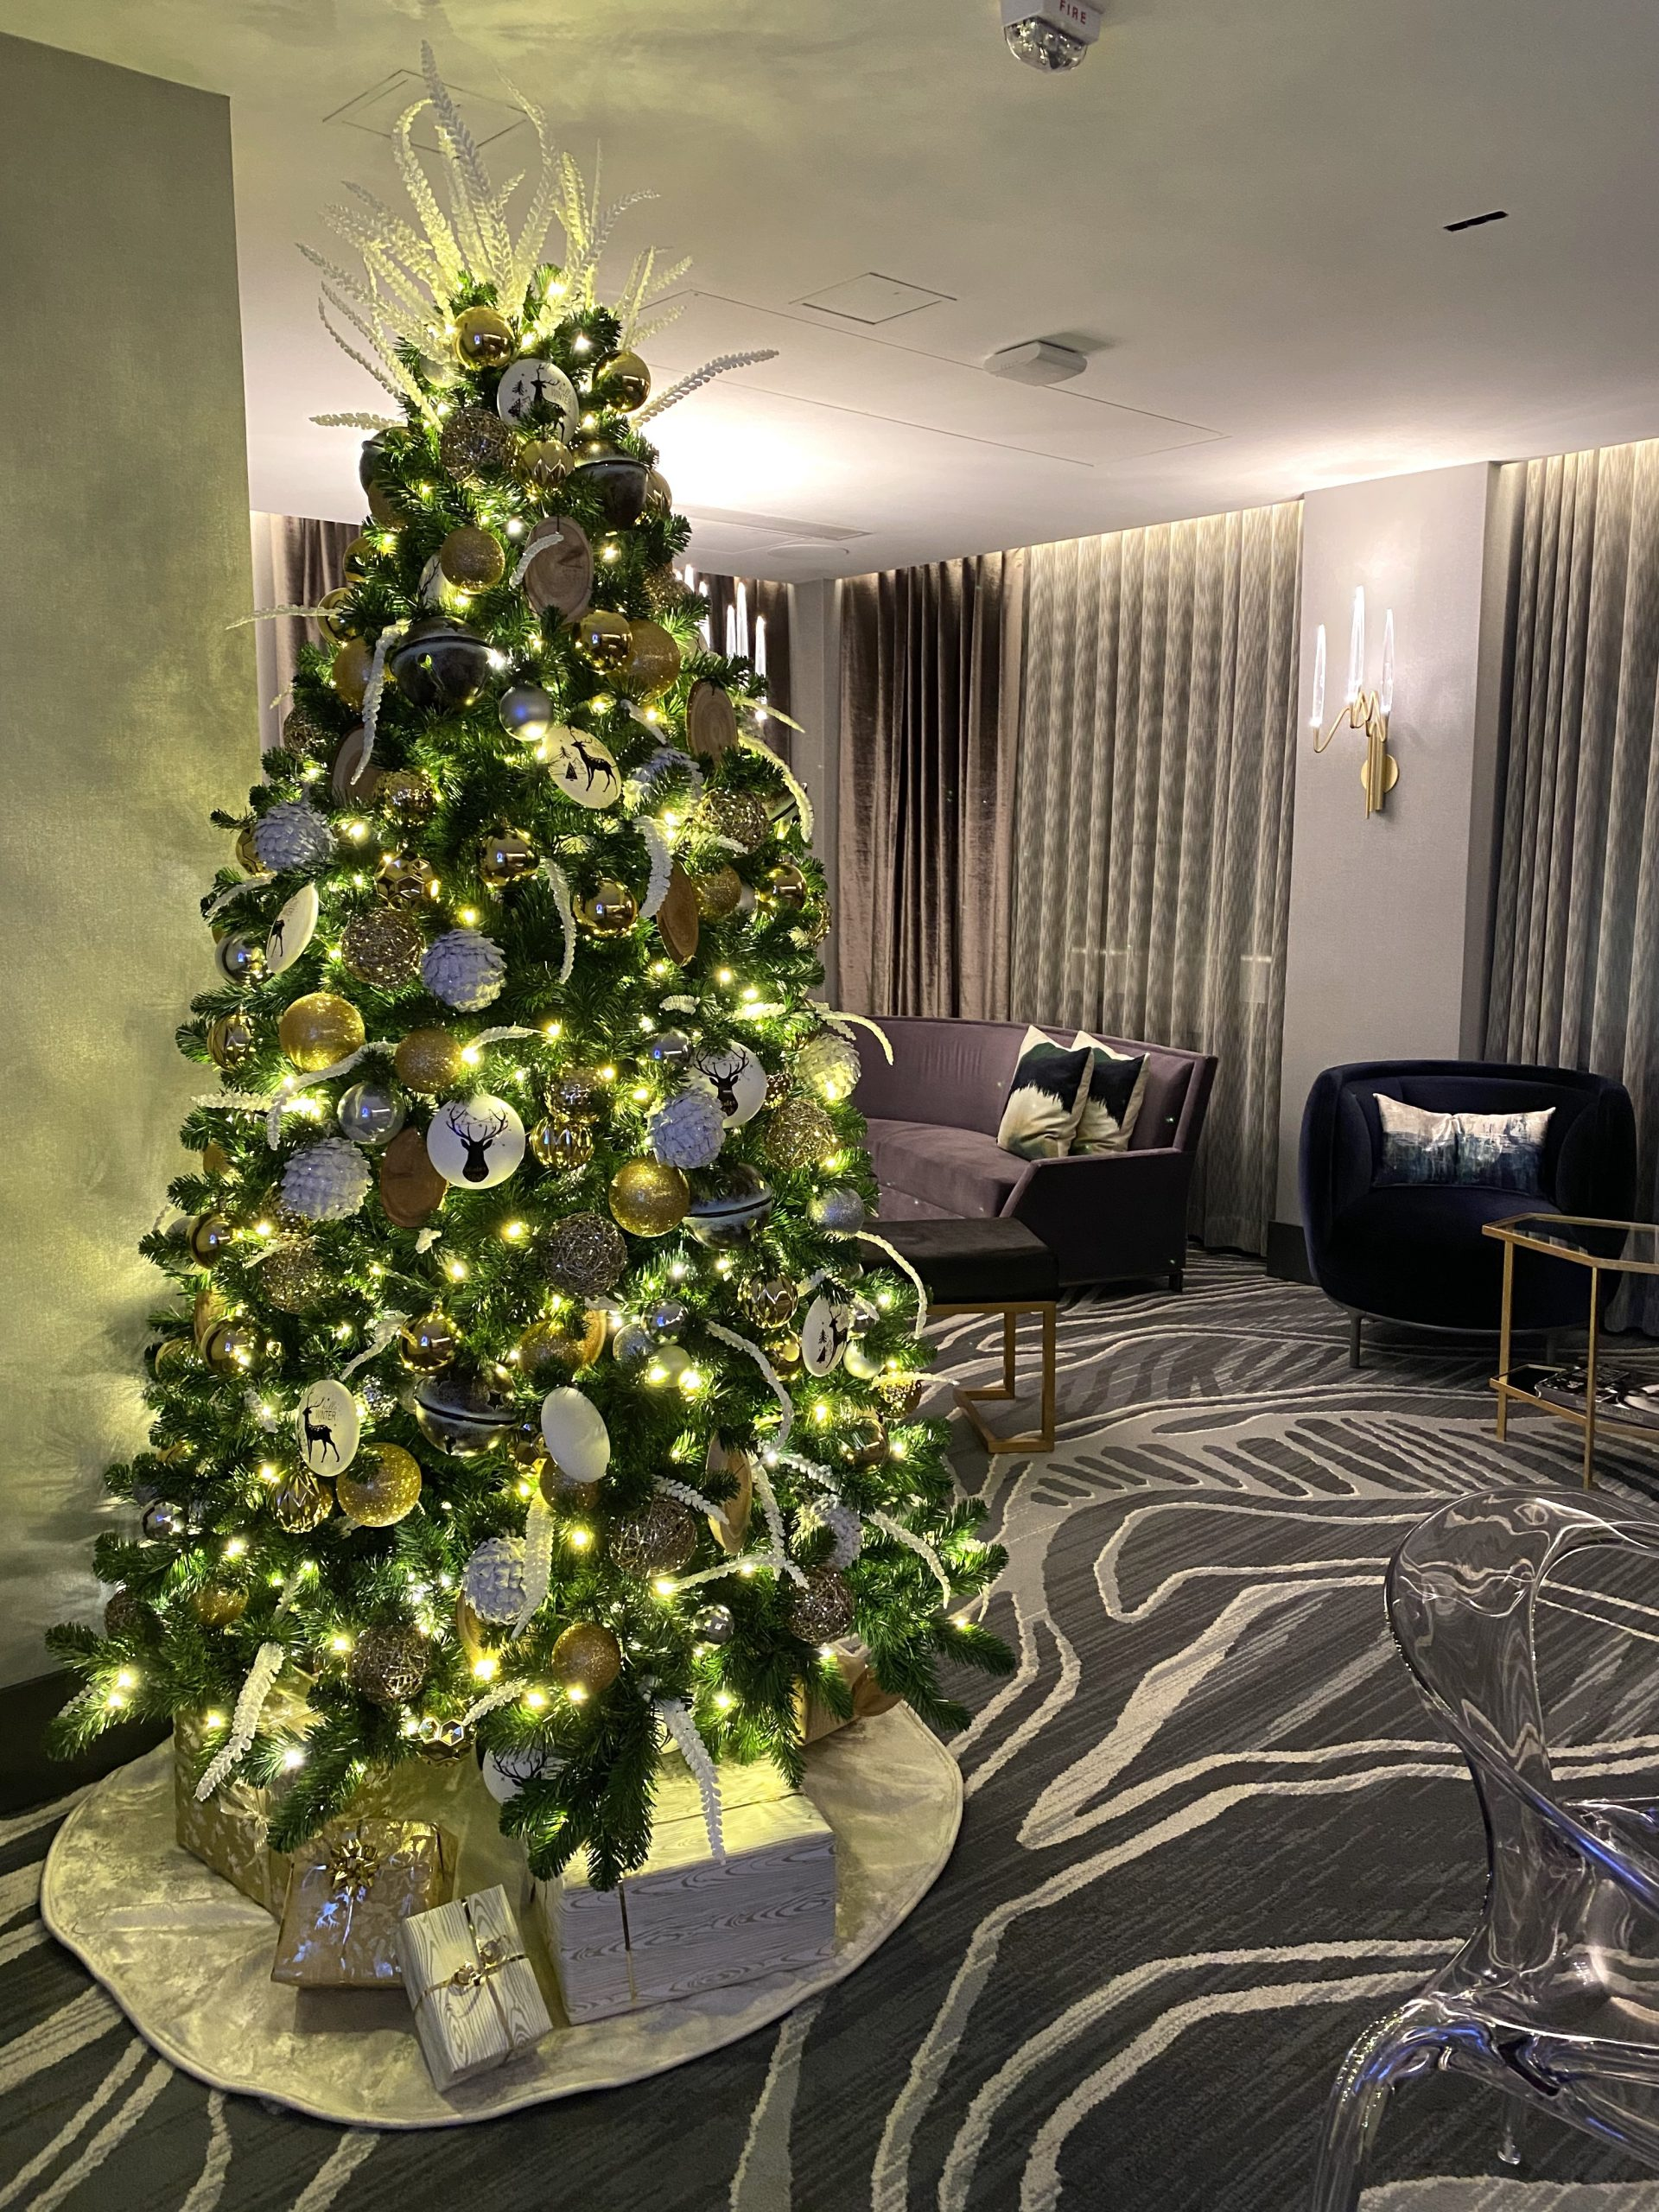 gilded west coast winter wonderland decorated christmas tree in hotel lobby with tree skirt and complimentary present pile under tree